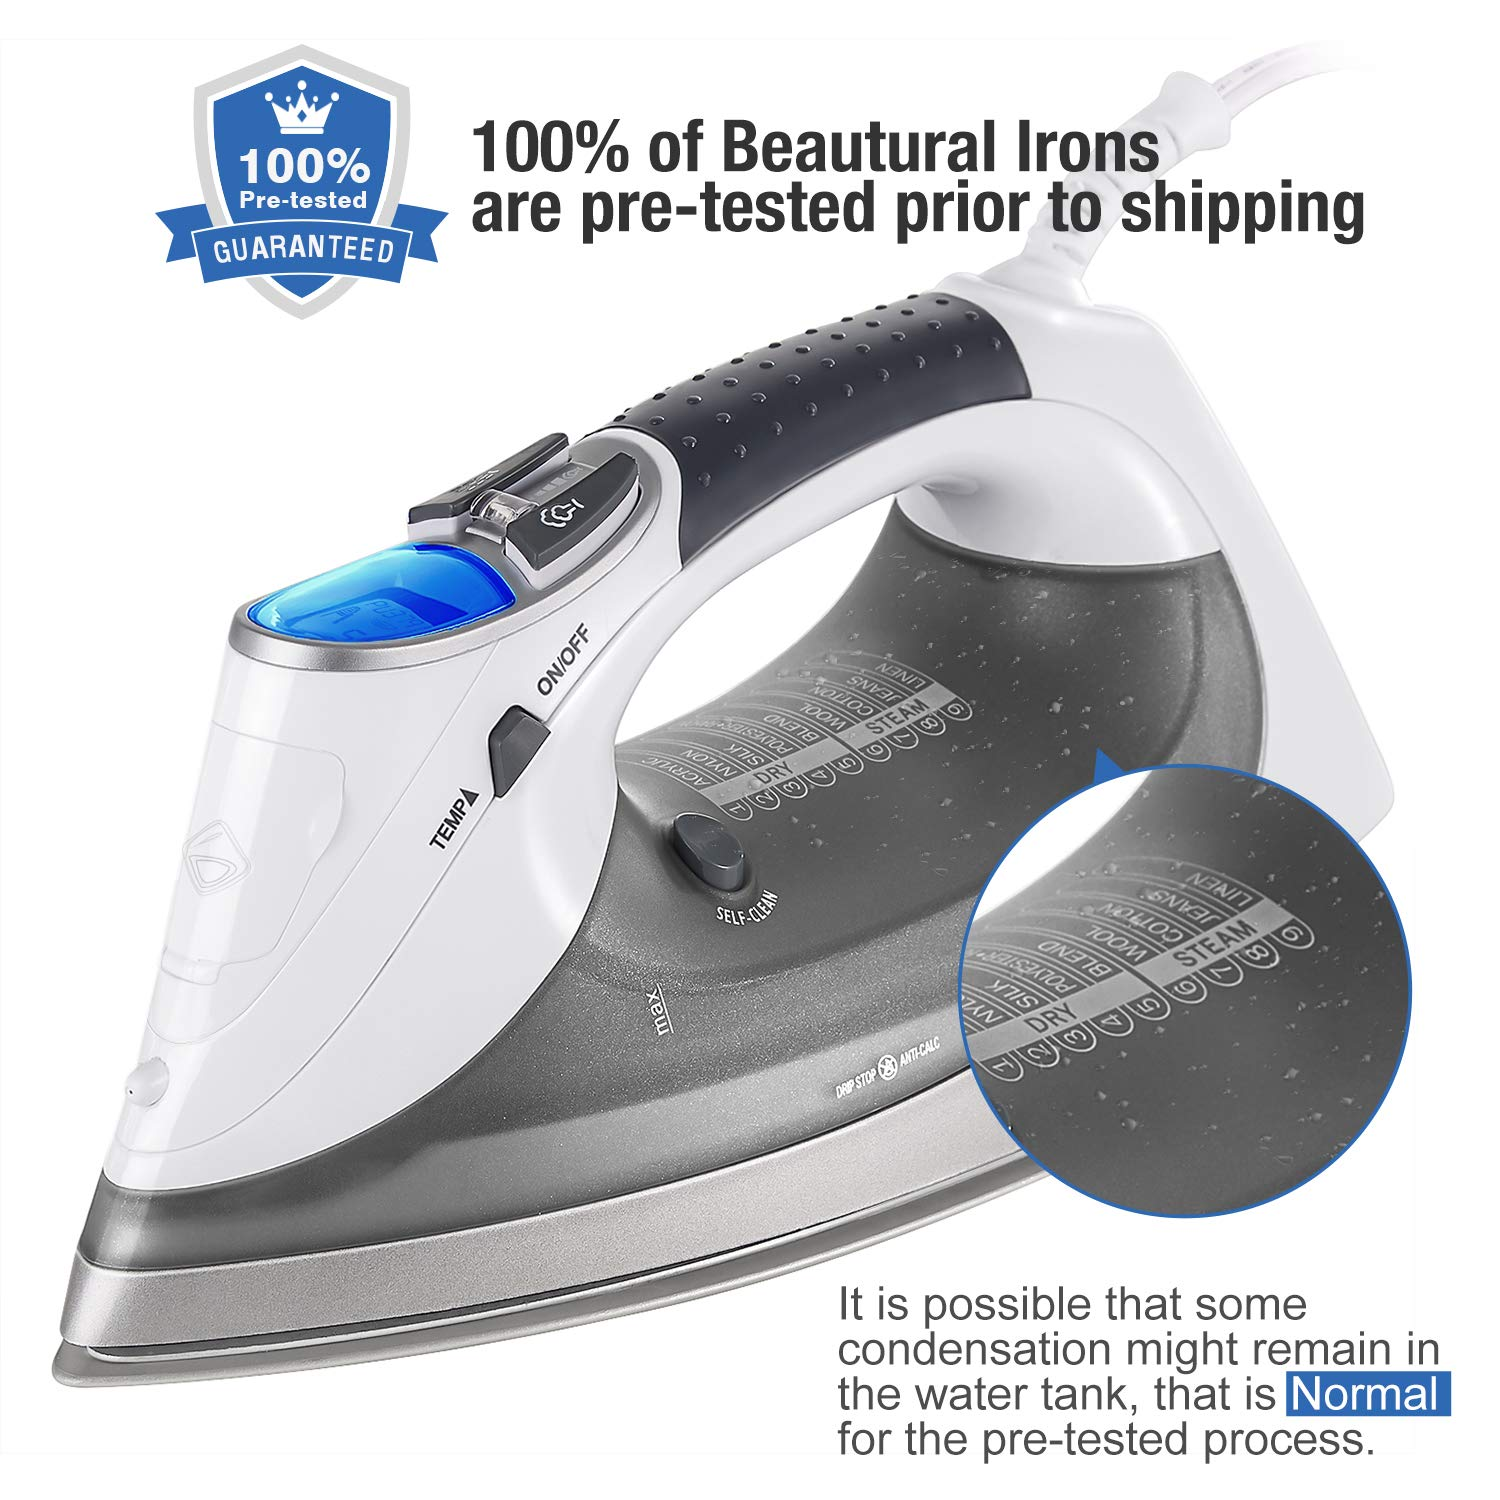 best steam irons consumer reports